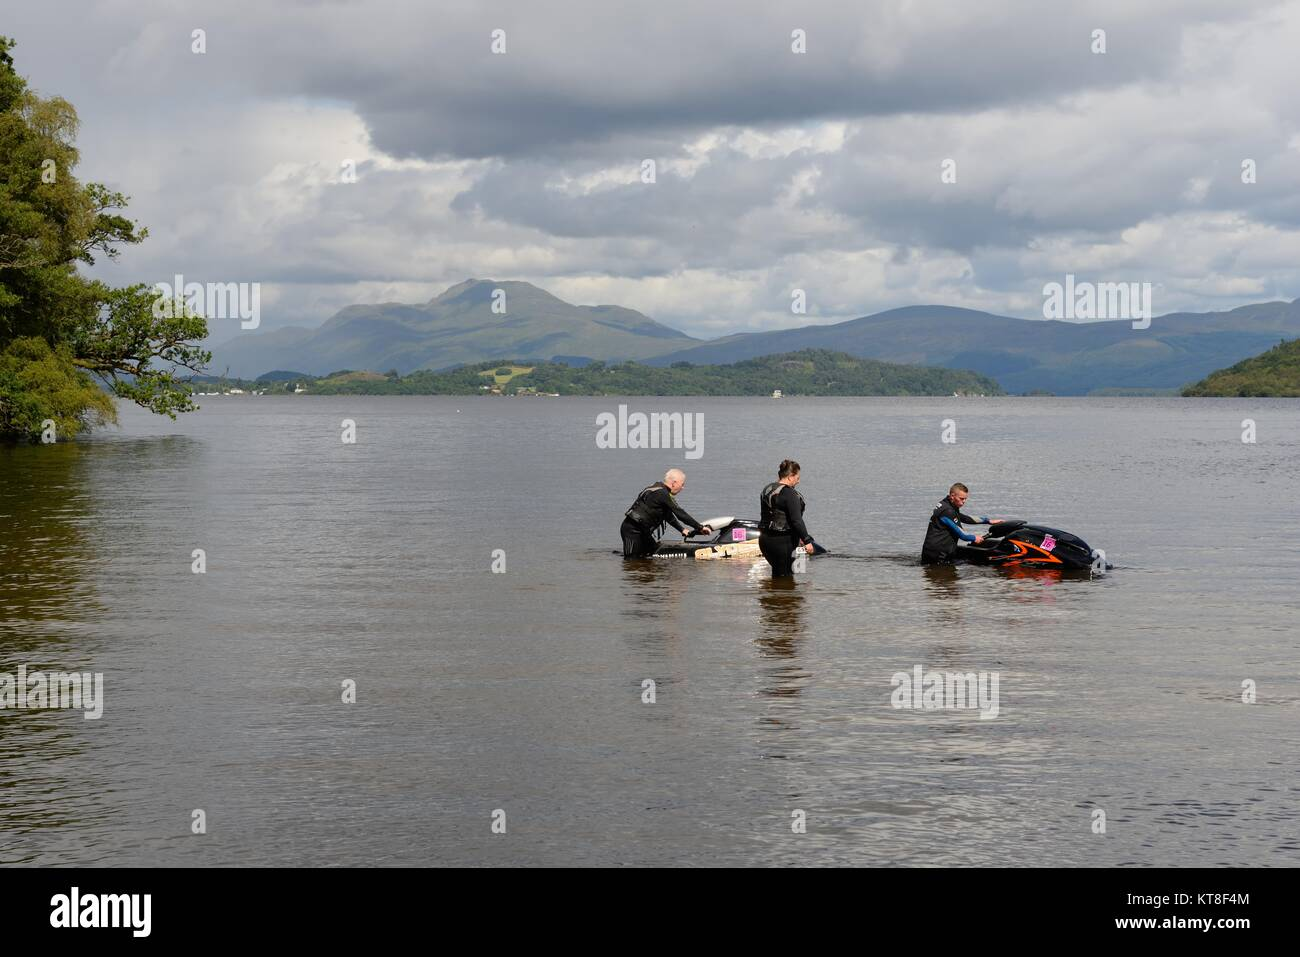 Jetski tuition from qualified instructor on Loch Lomond, Alexandria, Scotland, UK - Stock Image